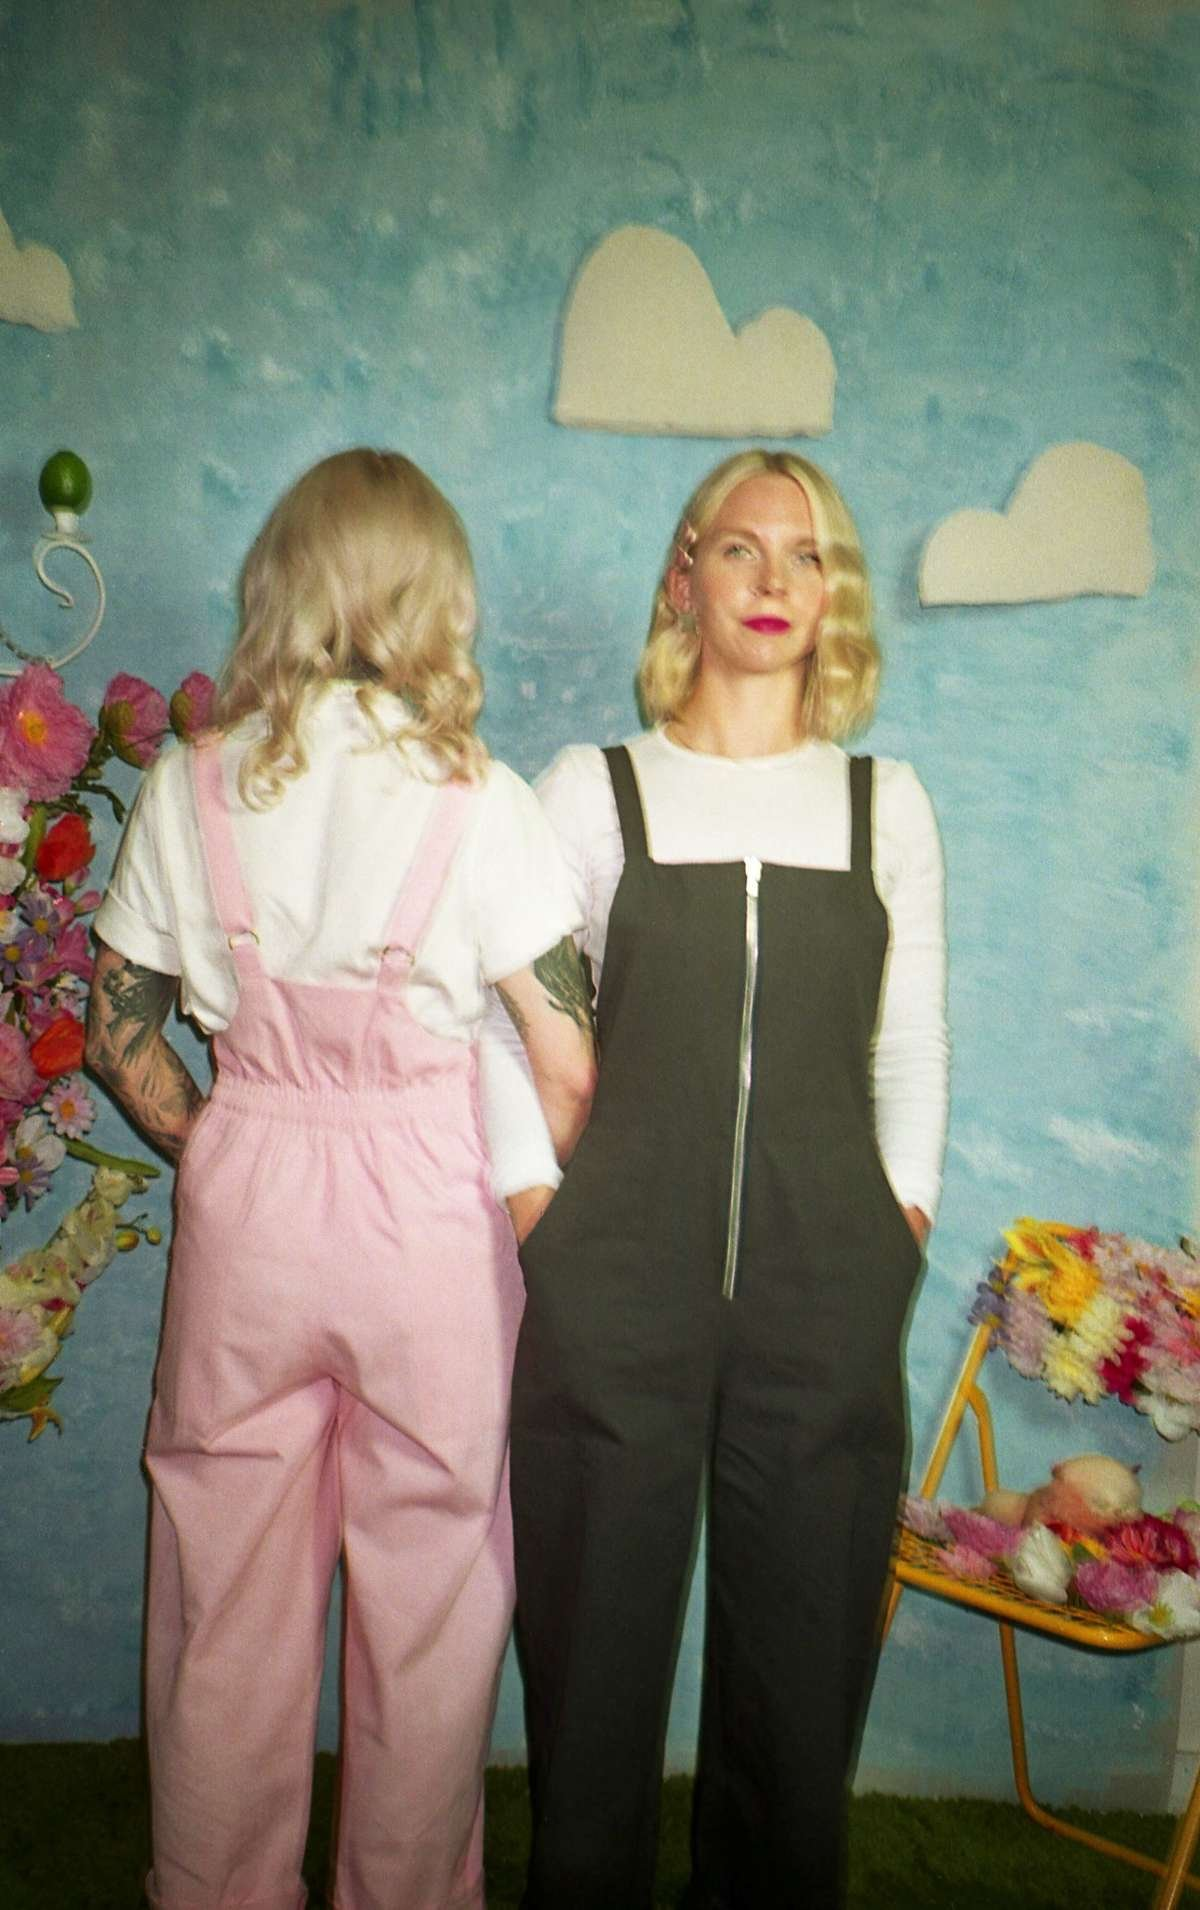 maggie jayne clothing warm weather collection asphalt and pink dungarees photograph by Heather Rappard of Brumwell twins on an indoor picnic